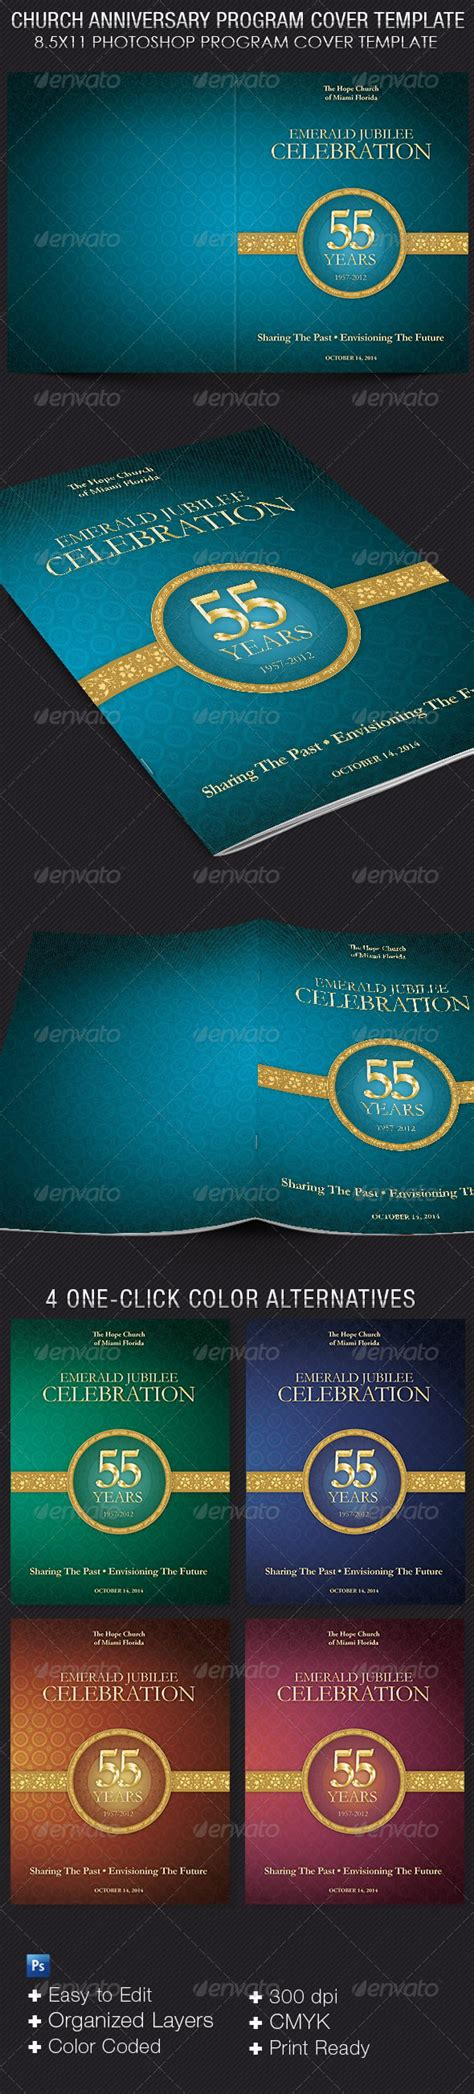 Church Anniversary Program Cover Template By 4cgraphic Graphicriver Church Program Template Graphics